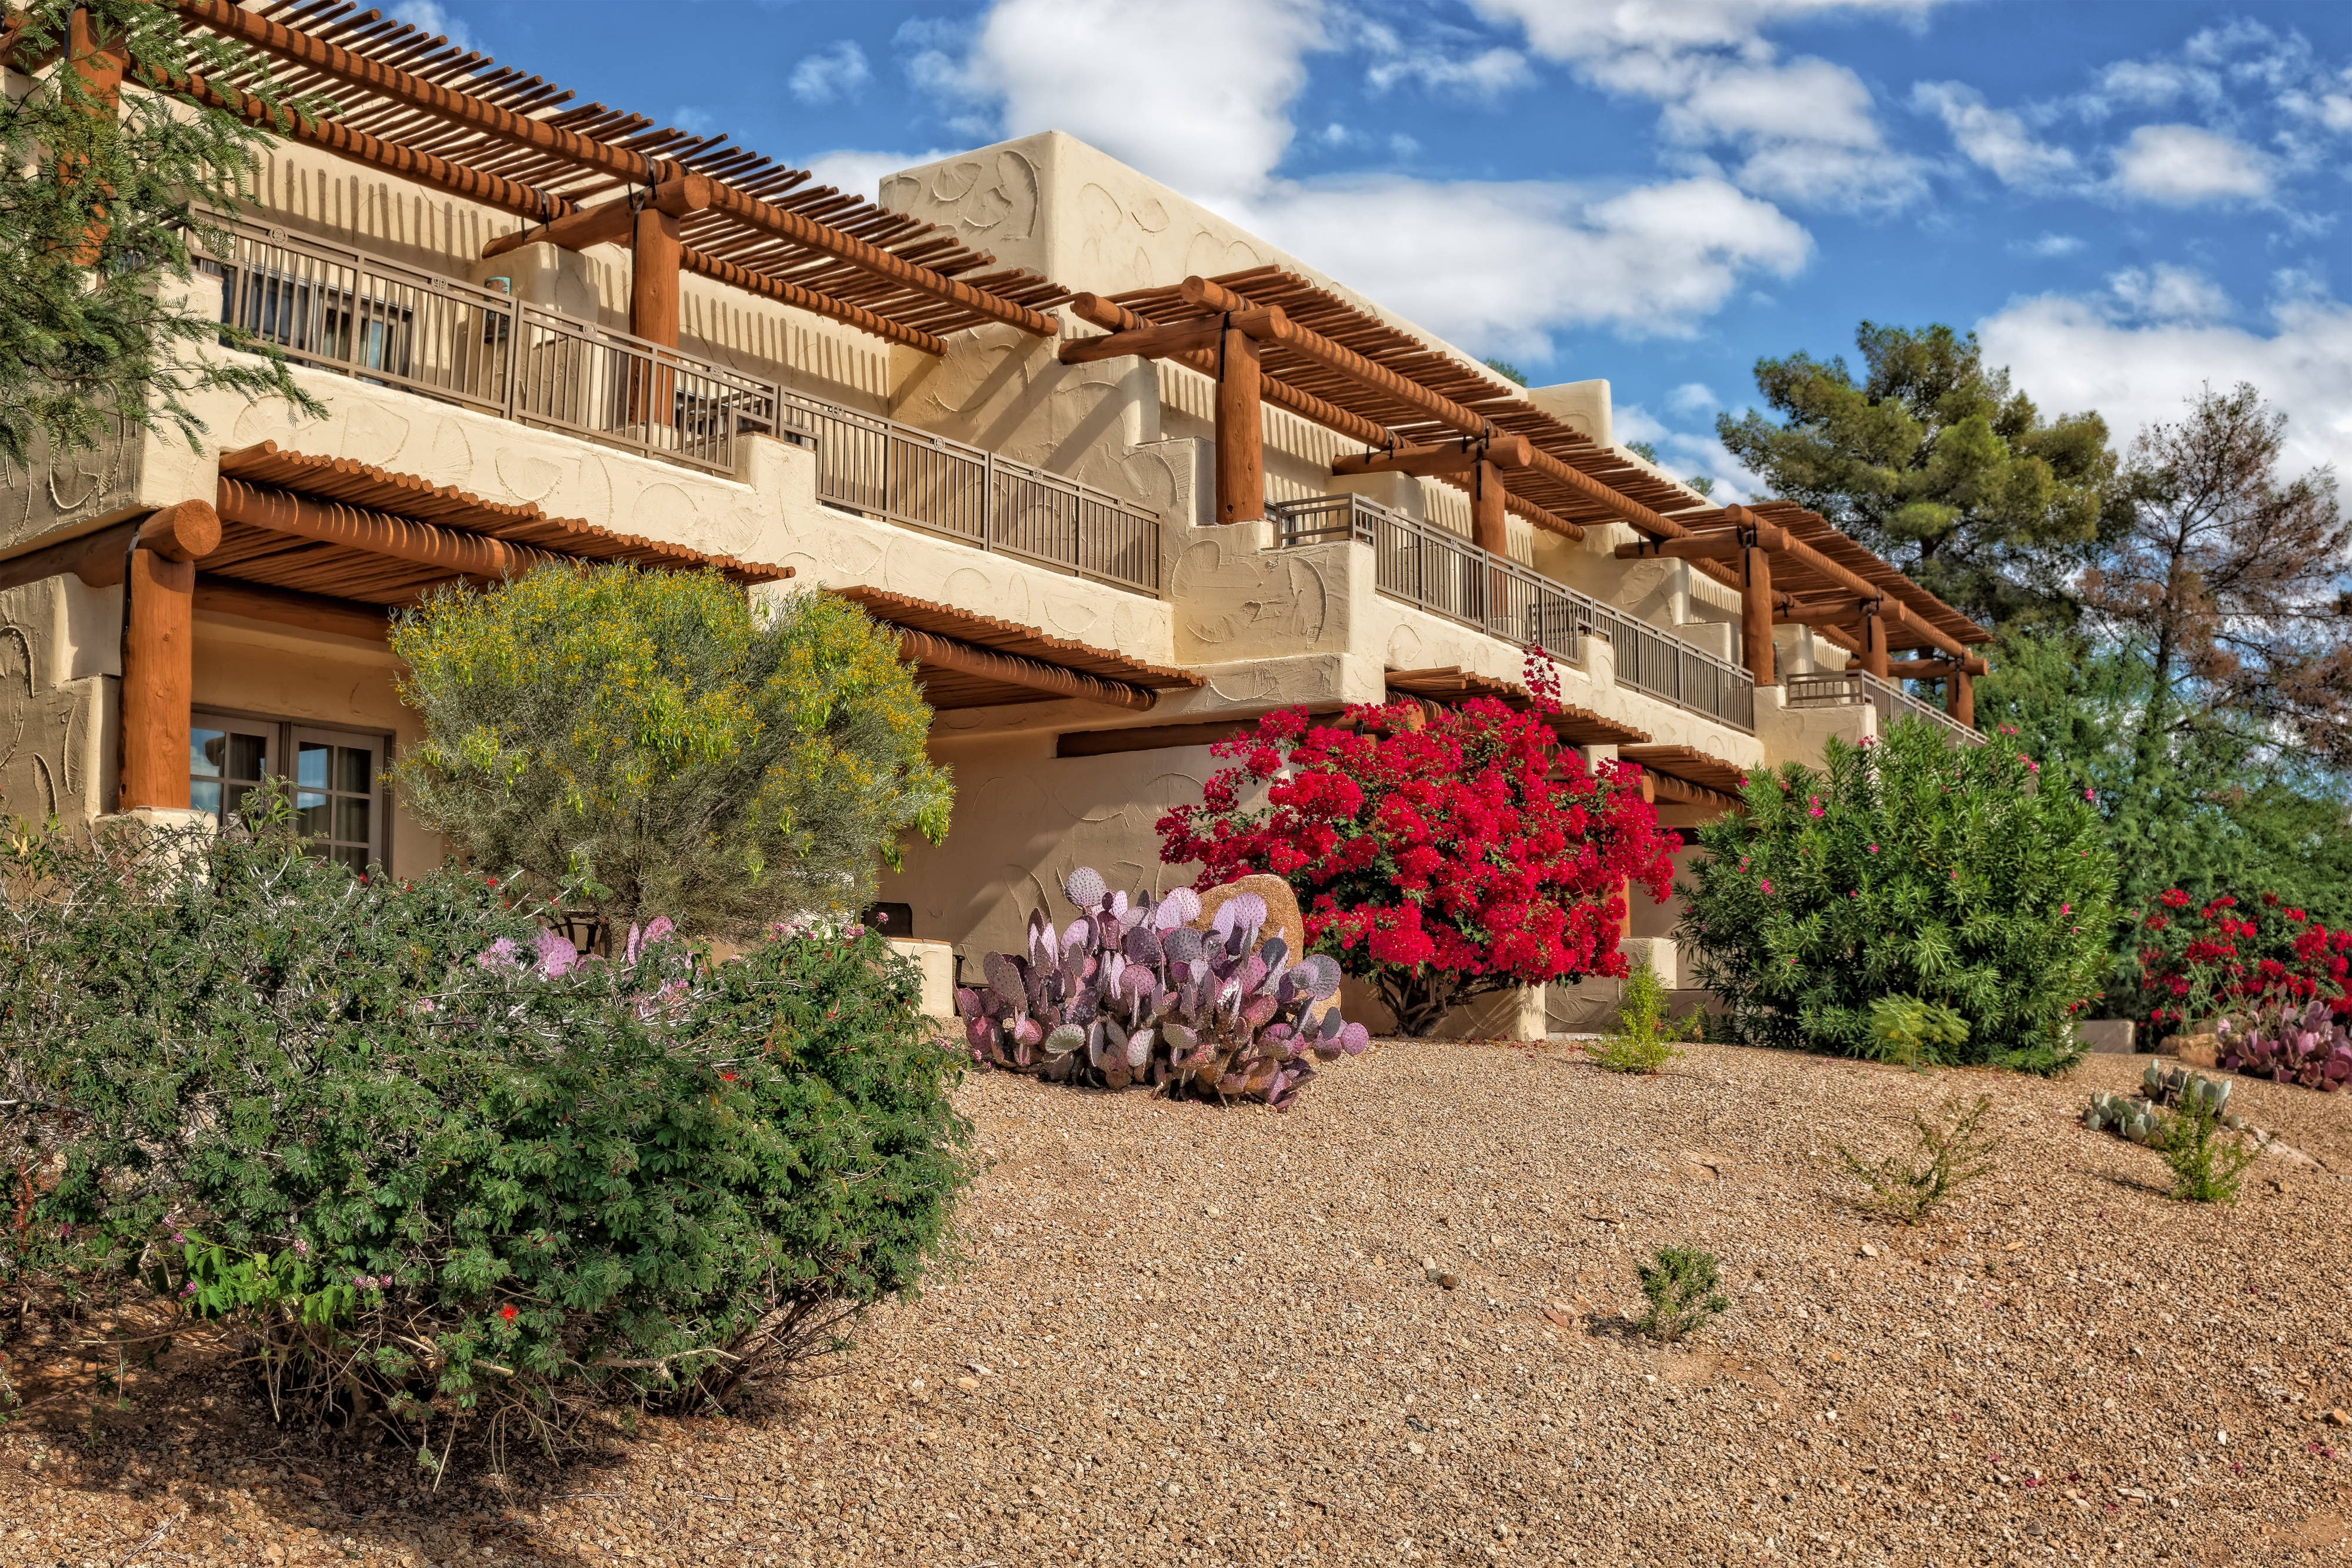 Casitas at JW Marriott Scottsdale